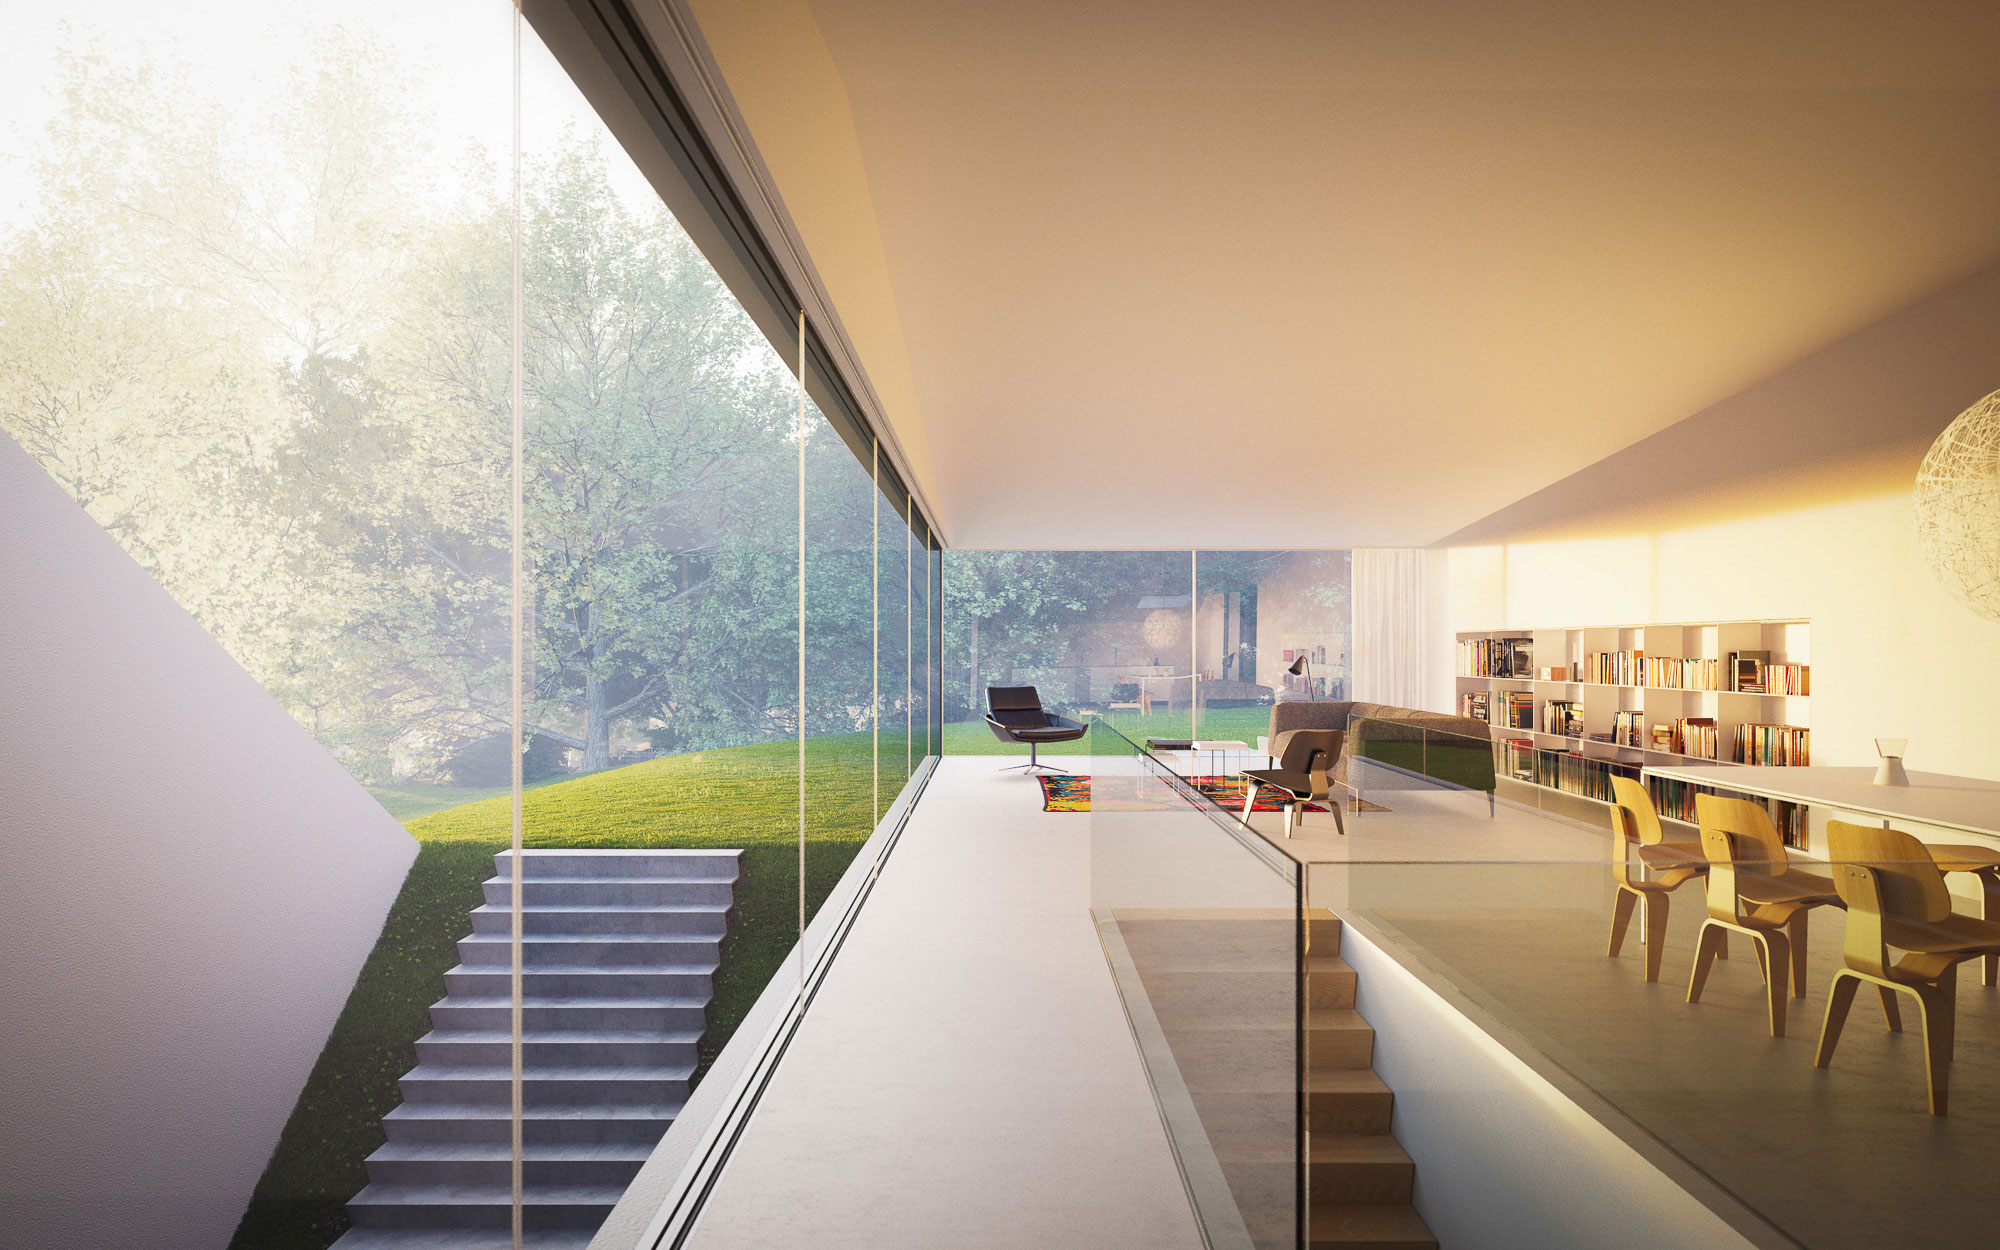 open-living-and-dining-room-modern-minimalist-garden-house-design-with-glass-window-and-white-interior-color-decorating-ideas